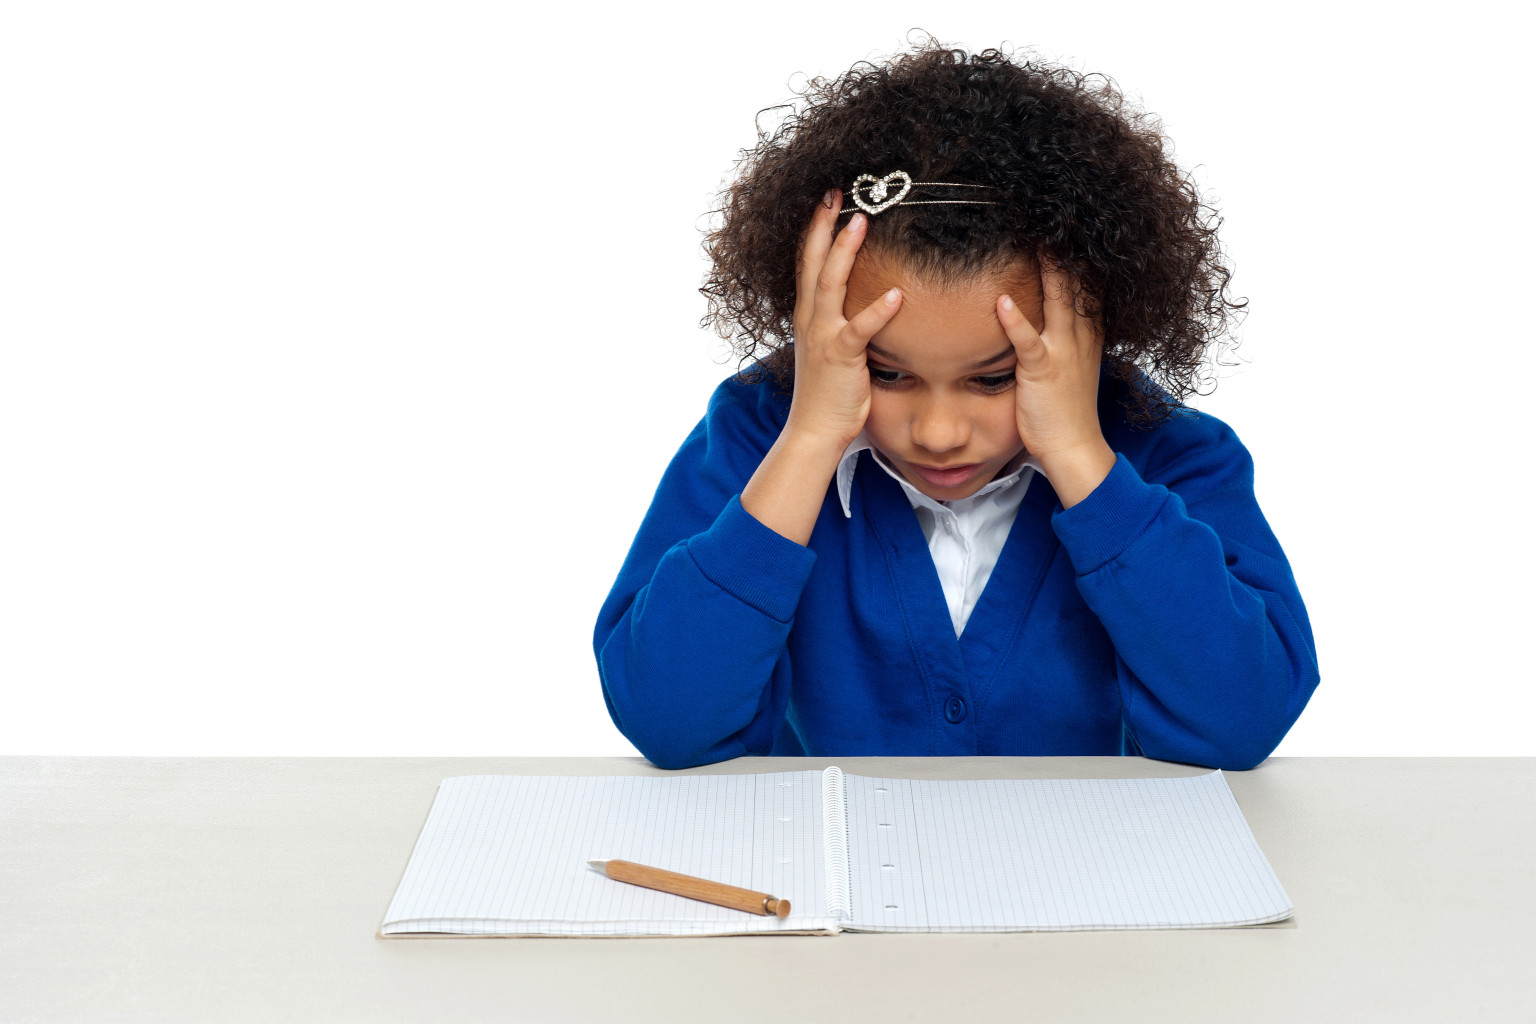 ONE CLICK Habari: Kids are STRESSED, Parents DON'T SEE